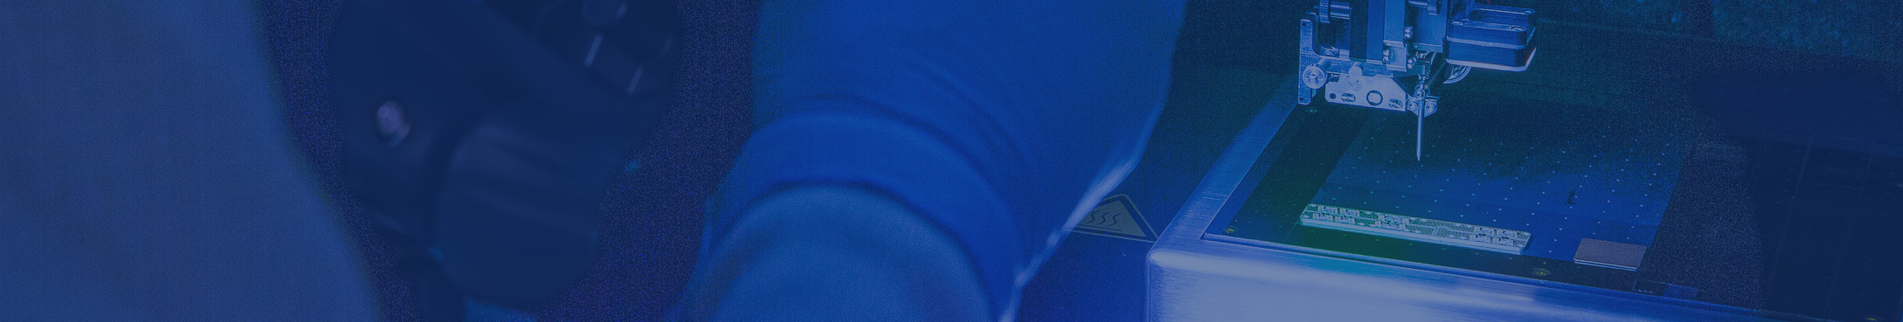 solutions-banner-img